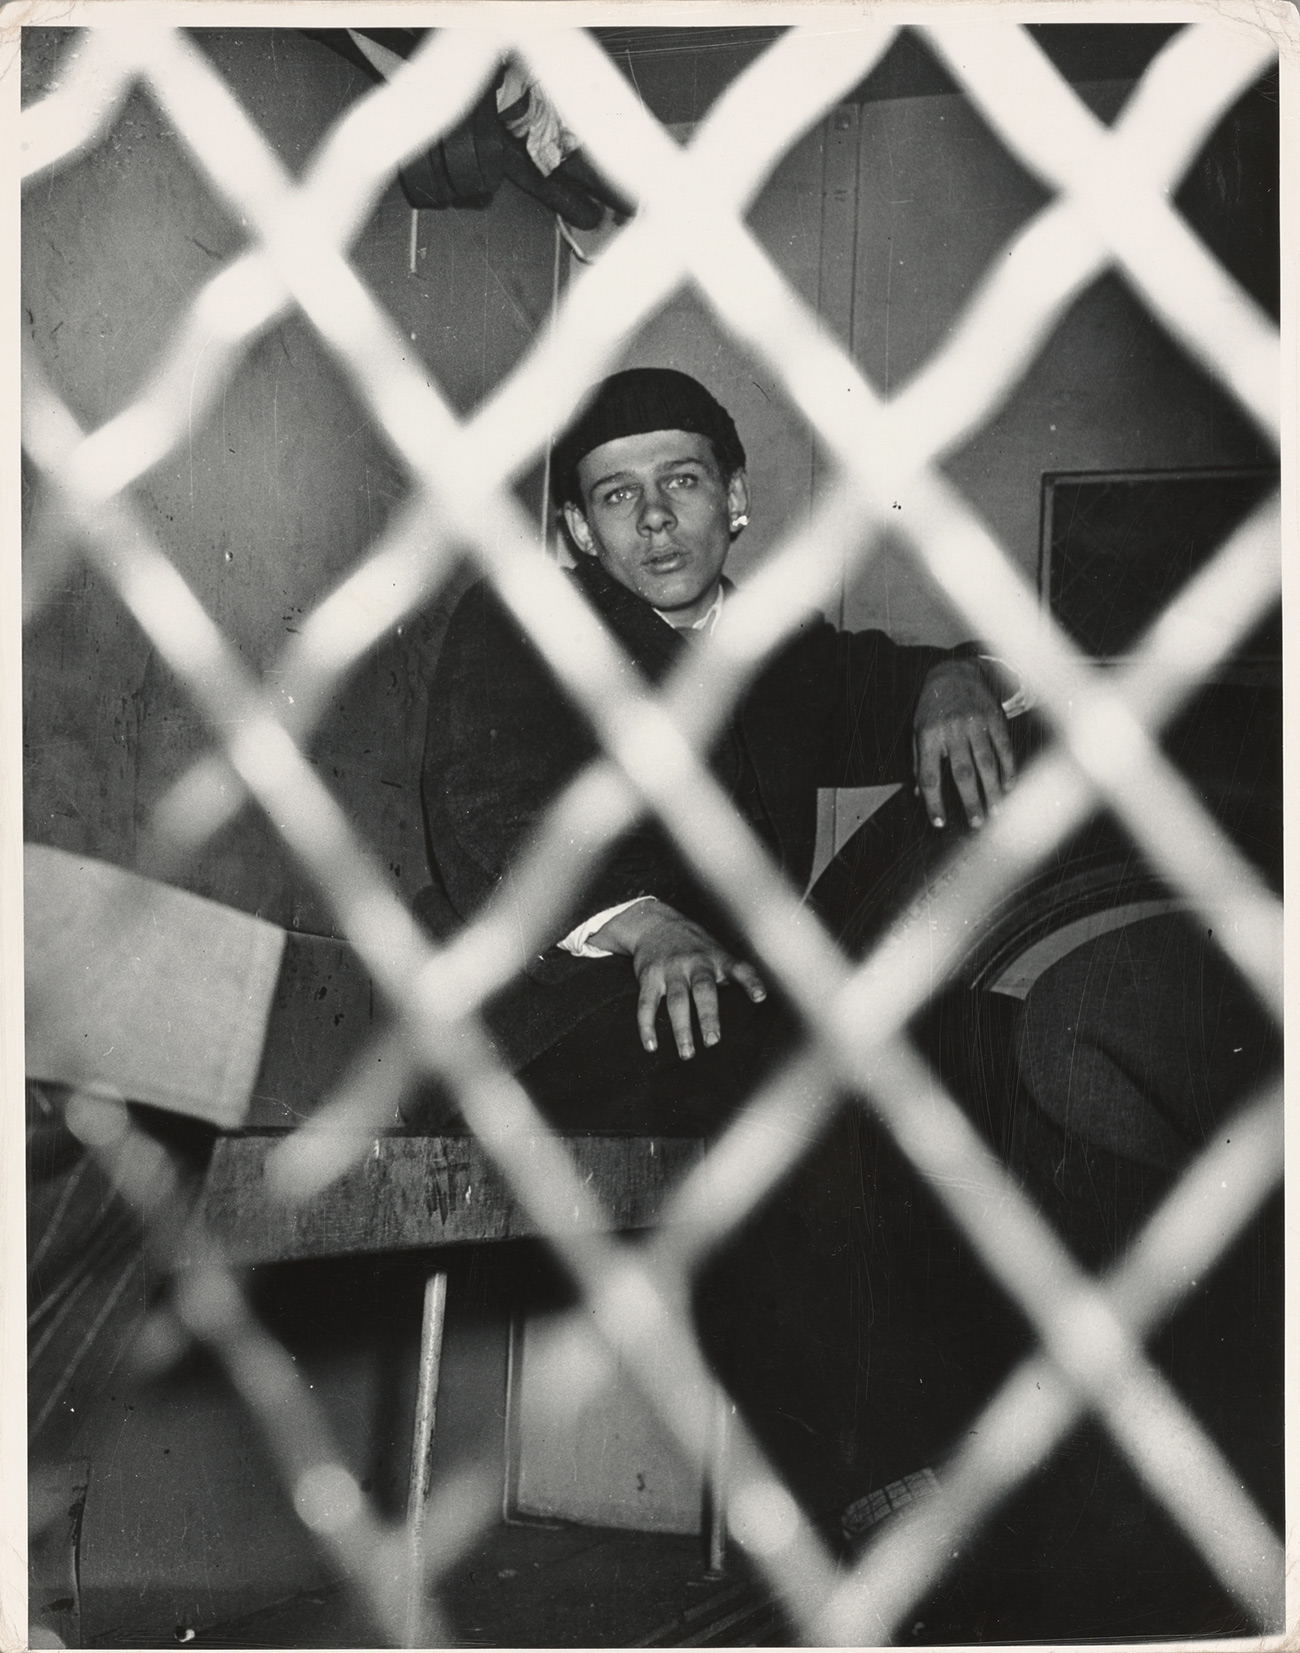 A teenage boy sits in a small room, looking at the camera from behind a chain fence